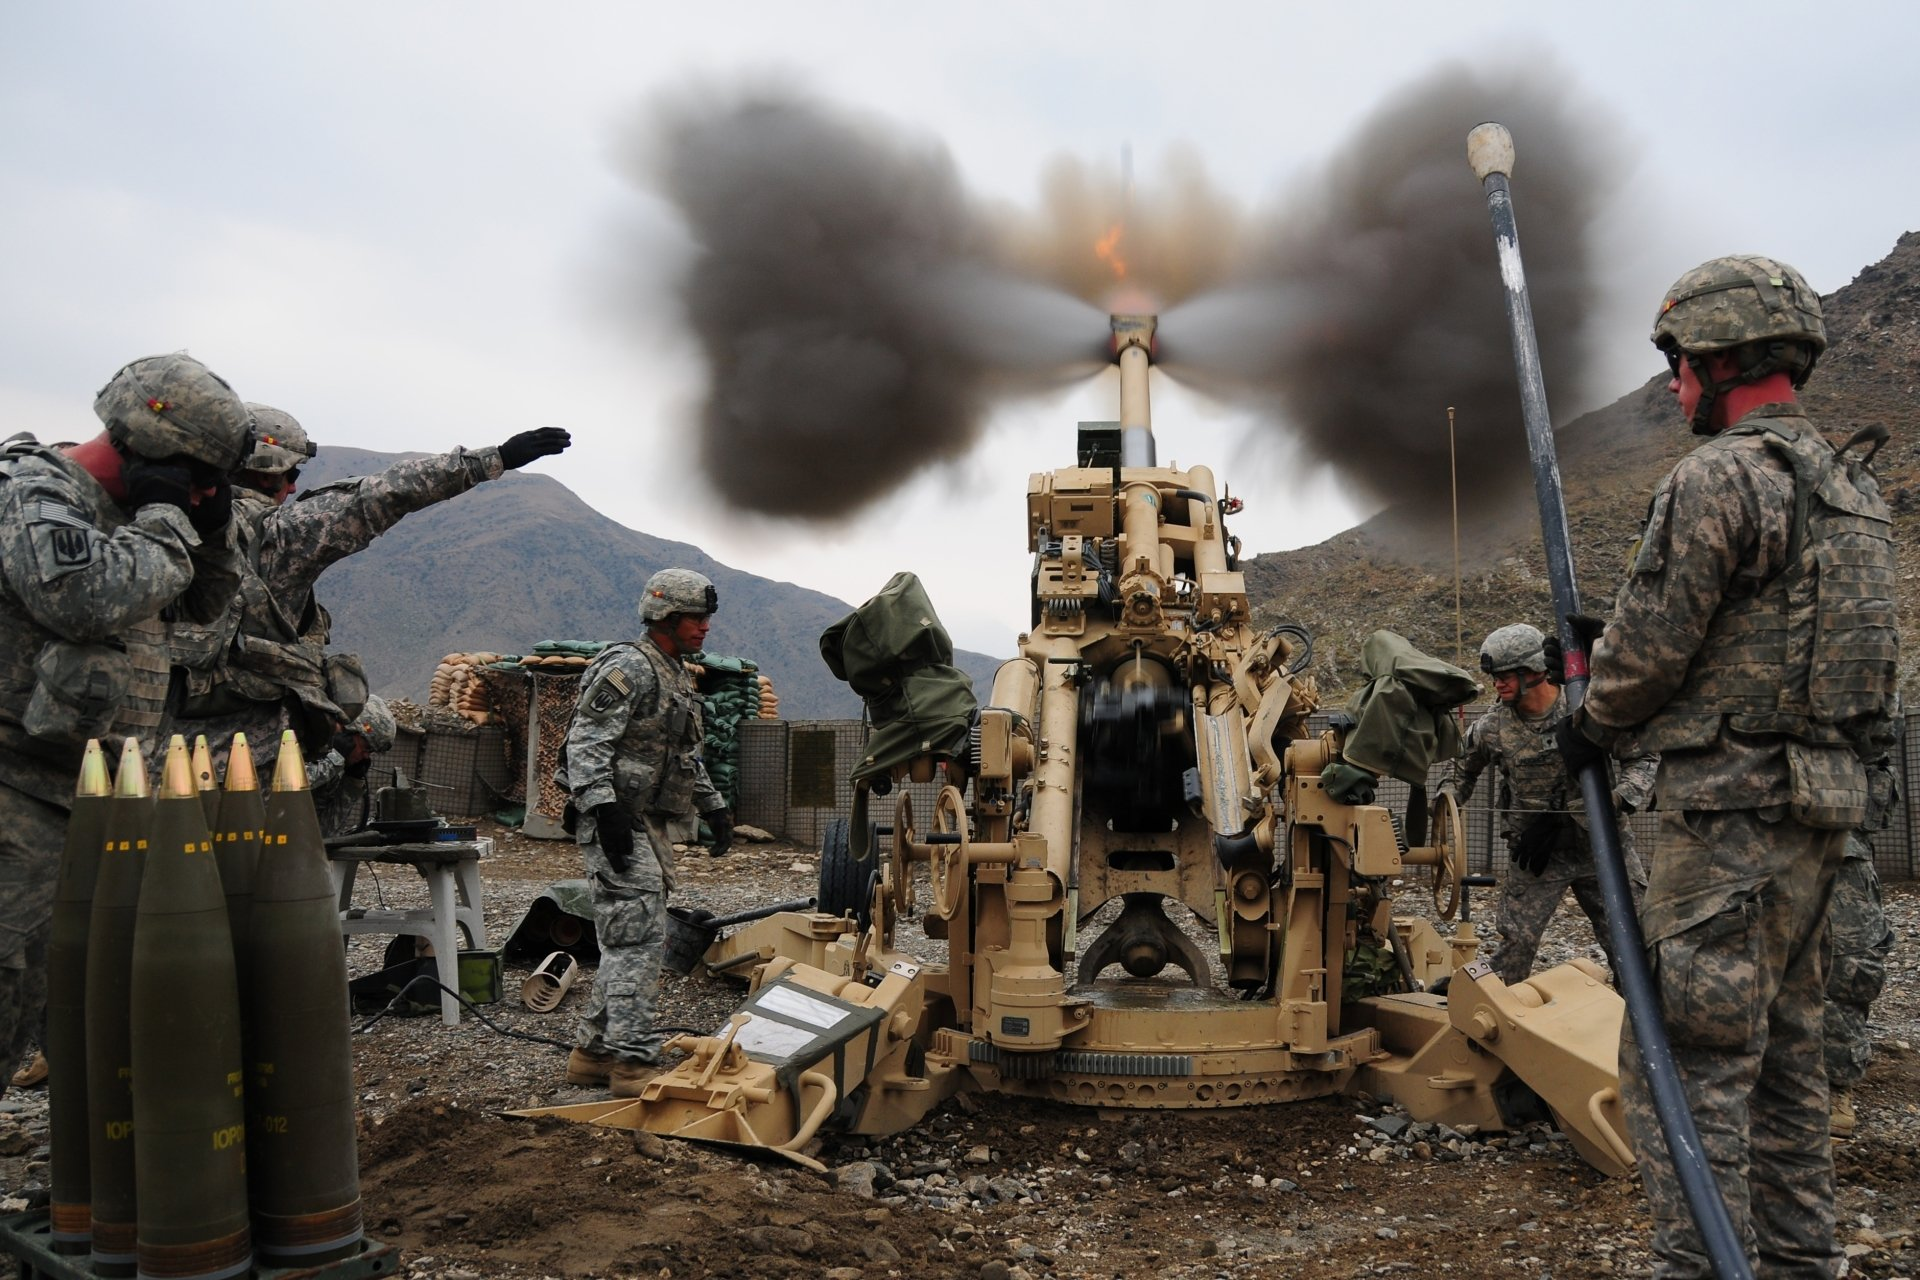 Artillery Full HD Wallpaper and Background Image ...